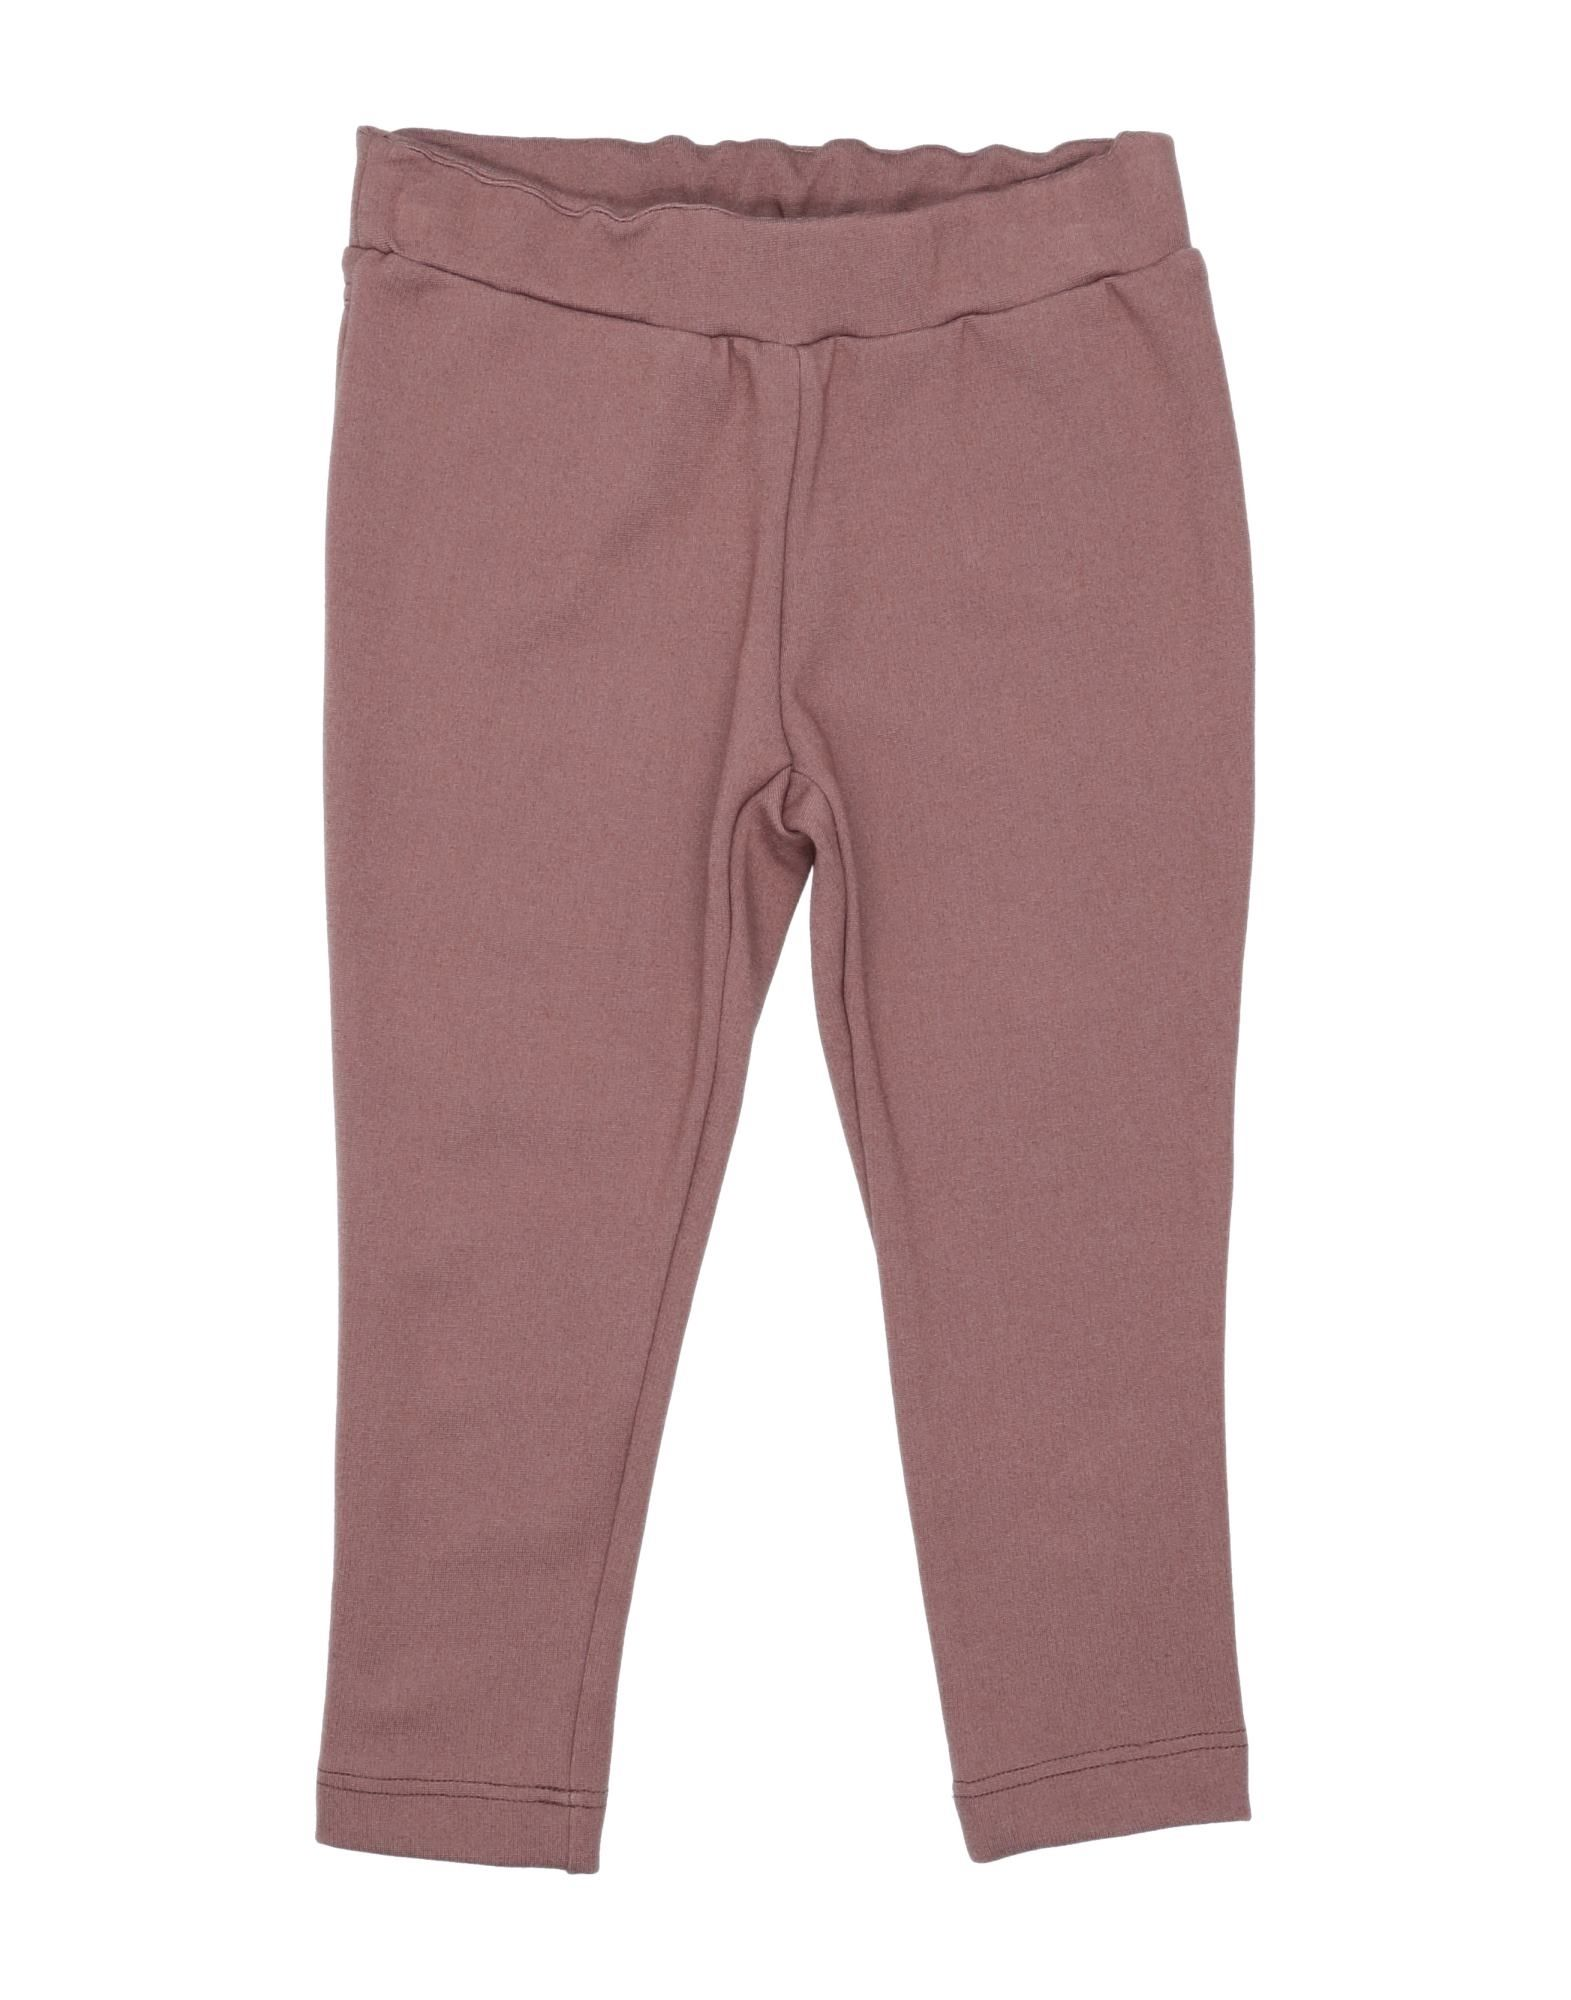 Miss Pois Kids' Casual Pants In Purple